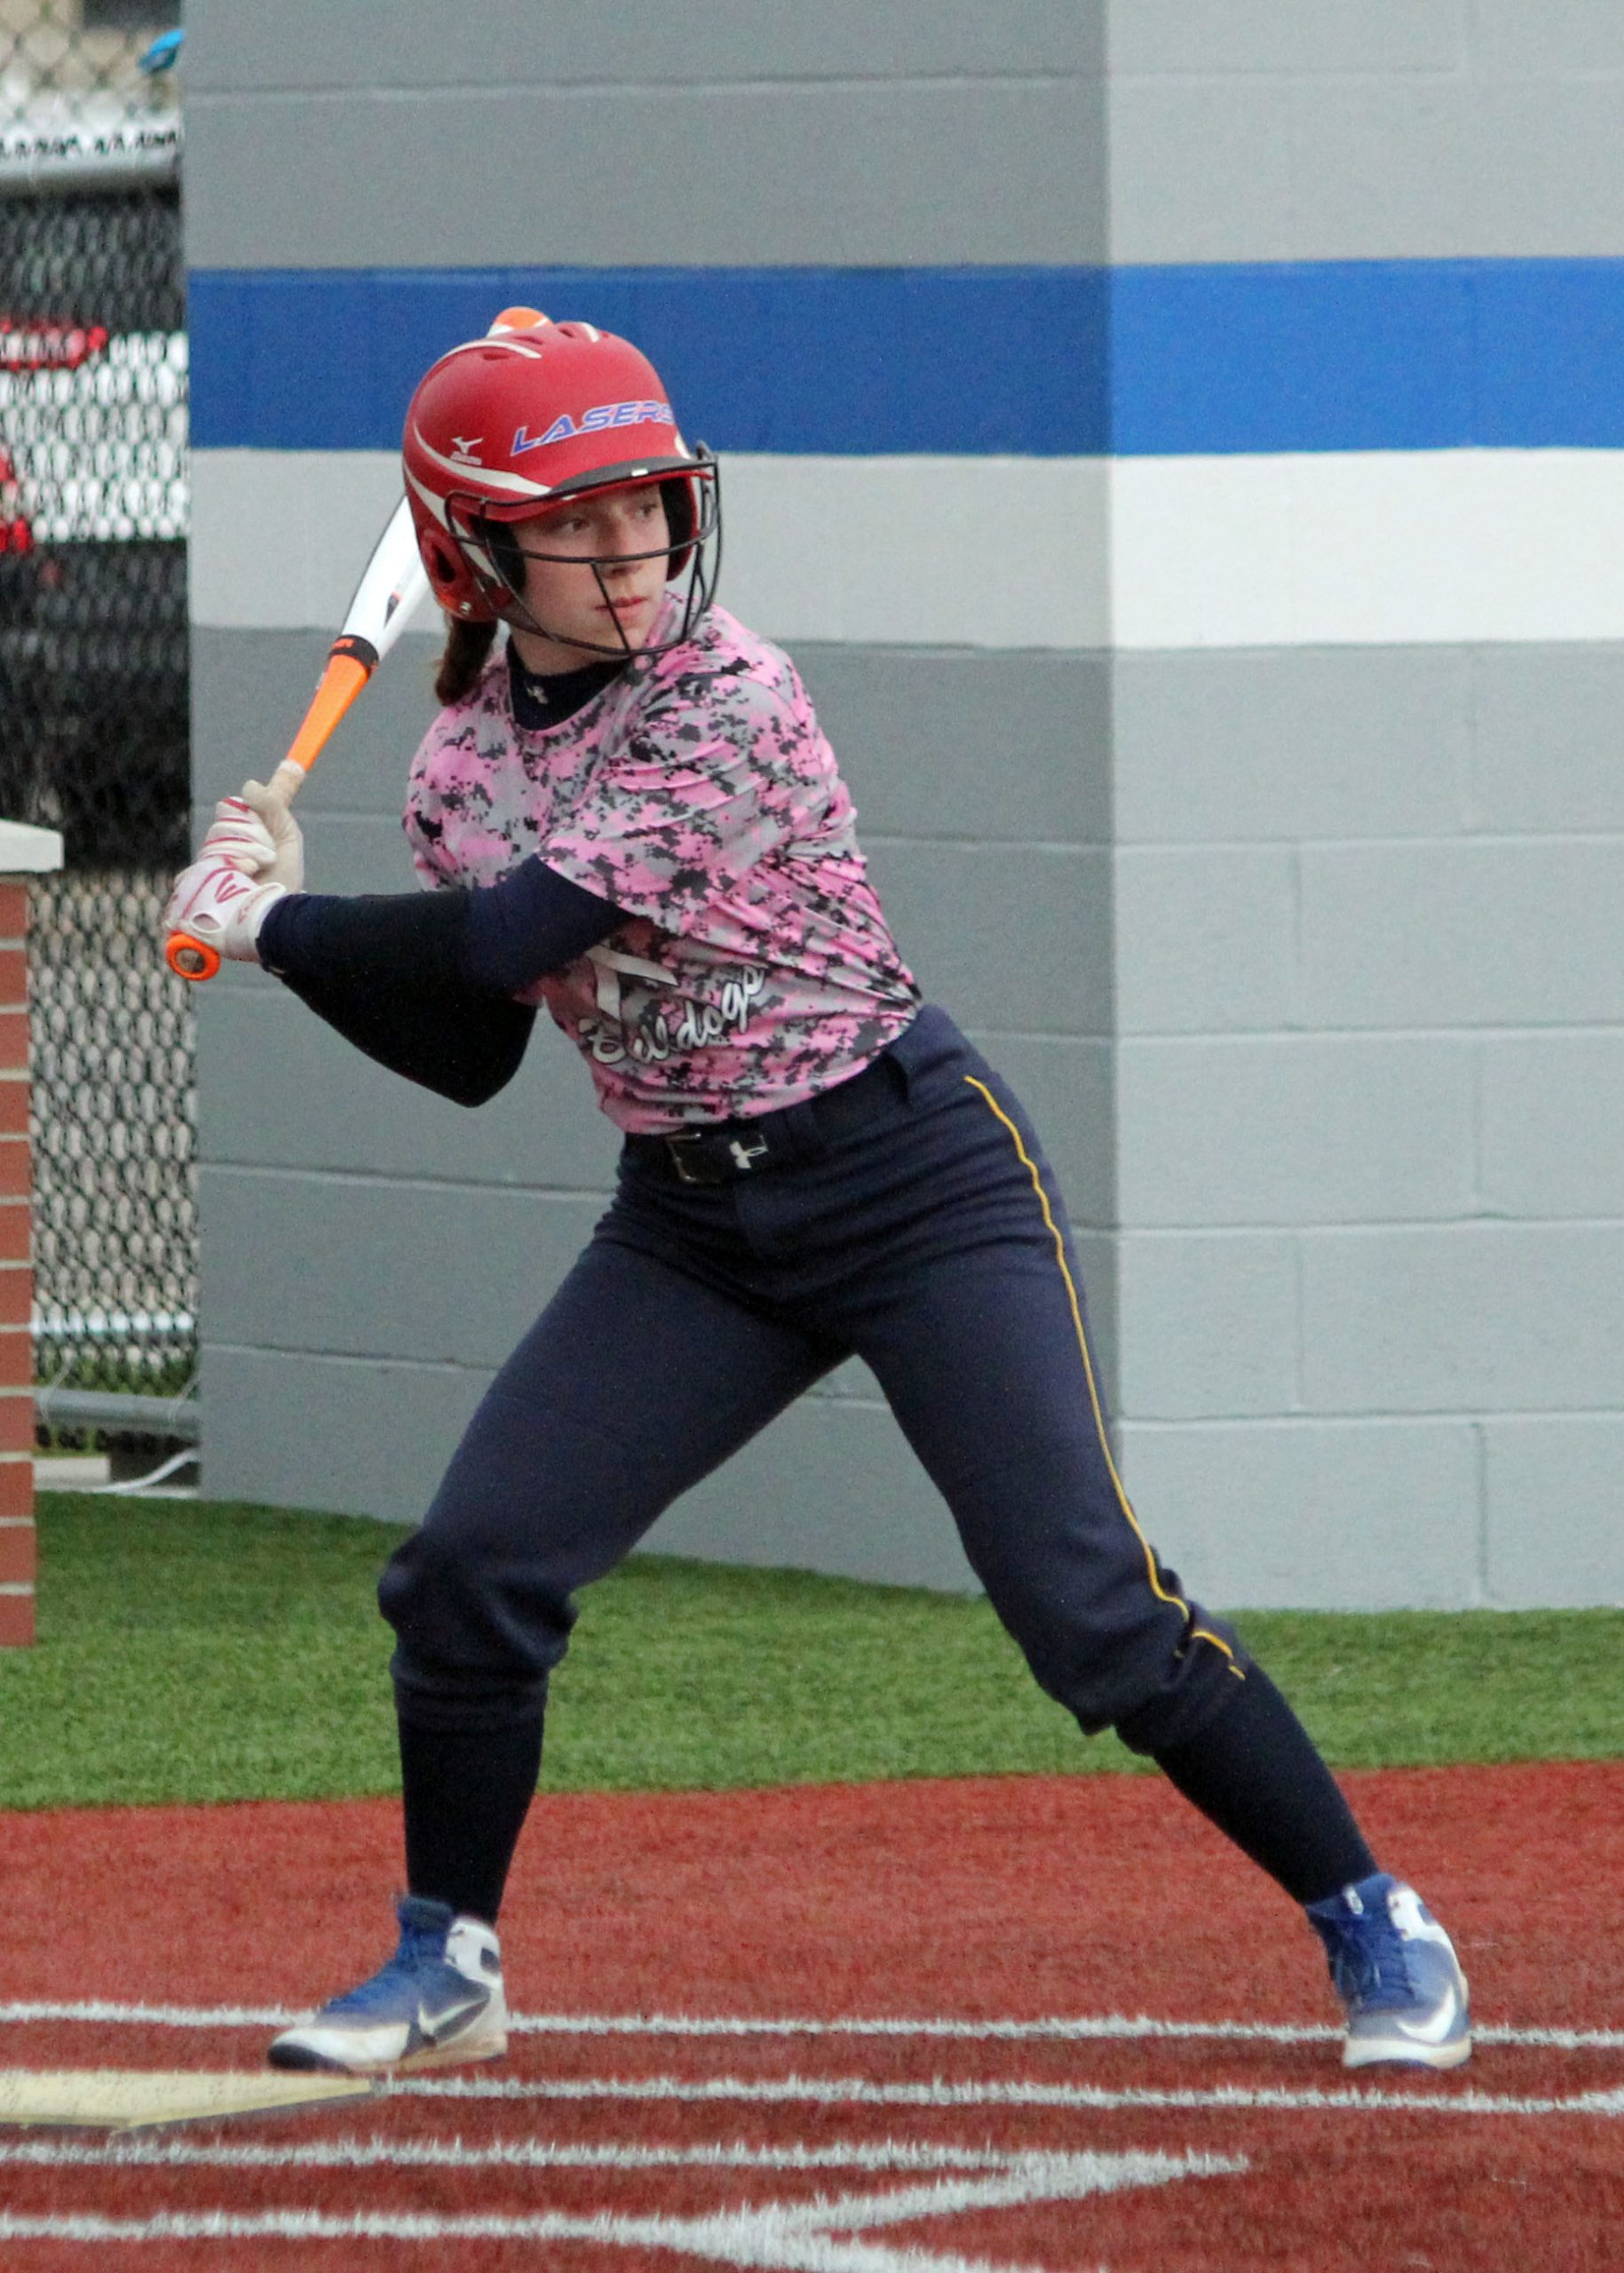 Kelly Leads Kenmore East Softball to Victory